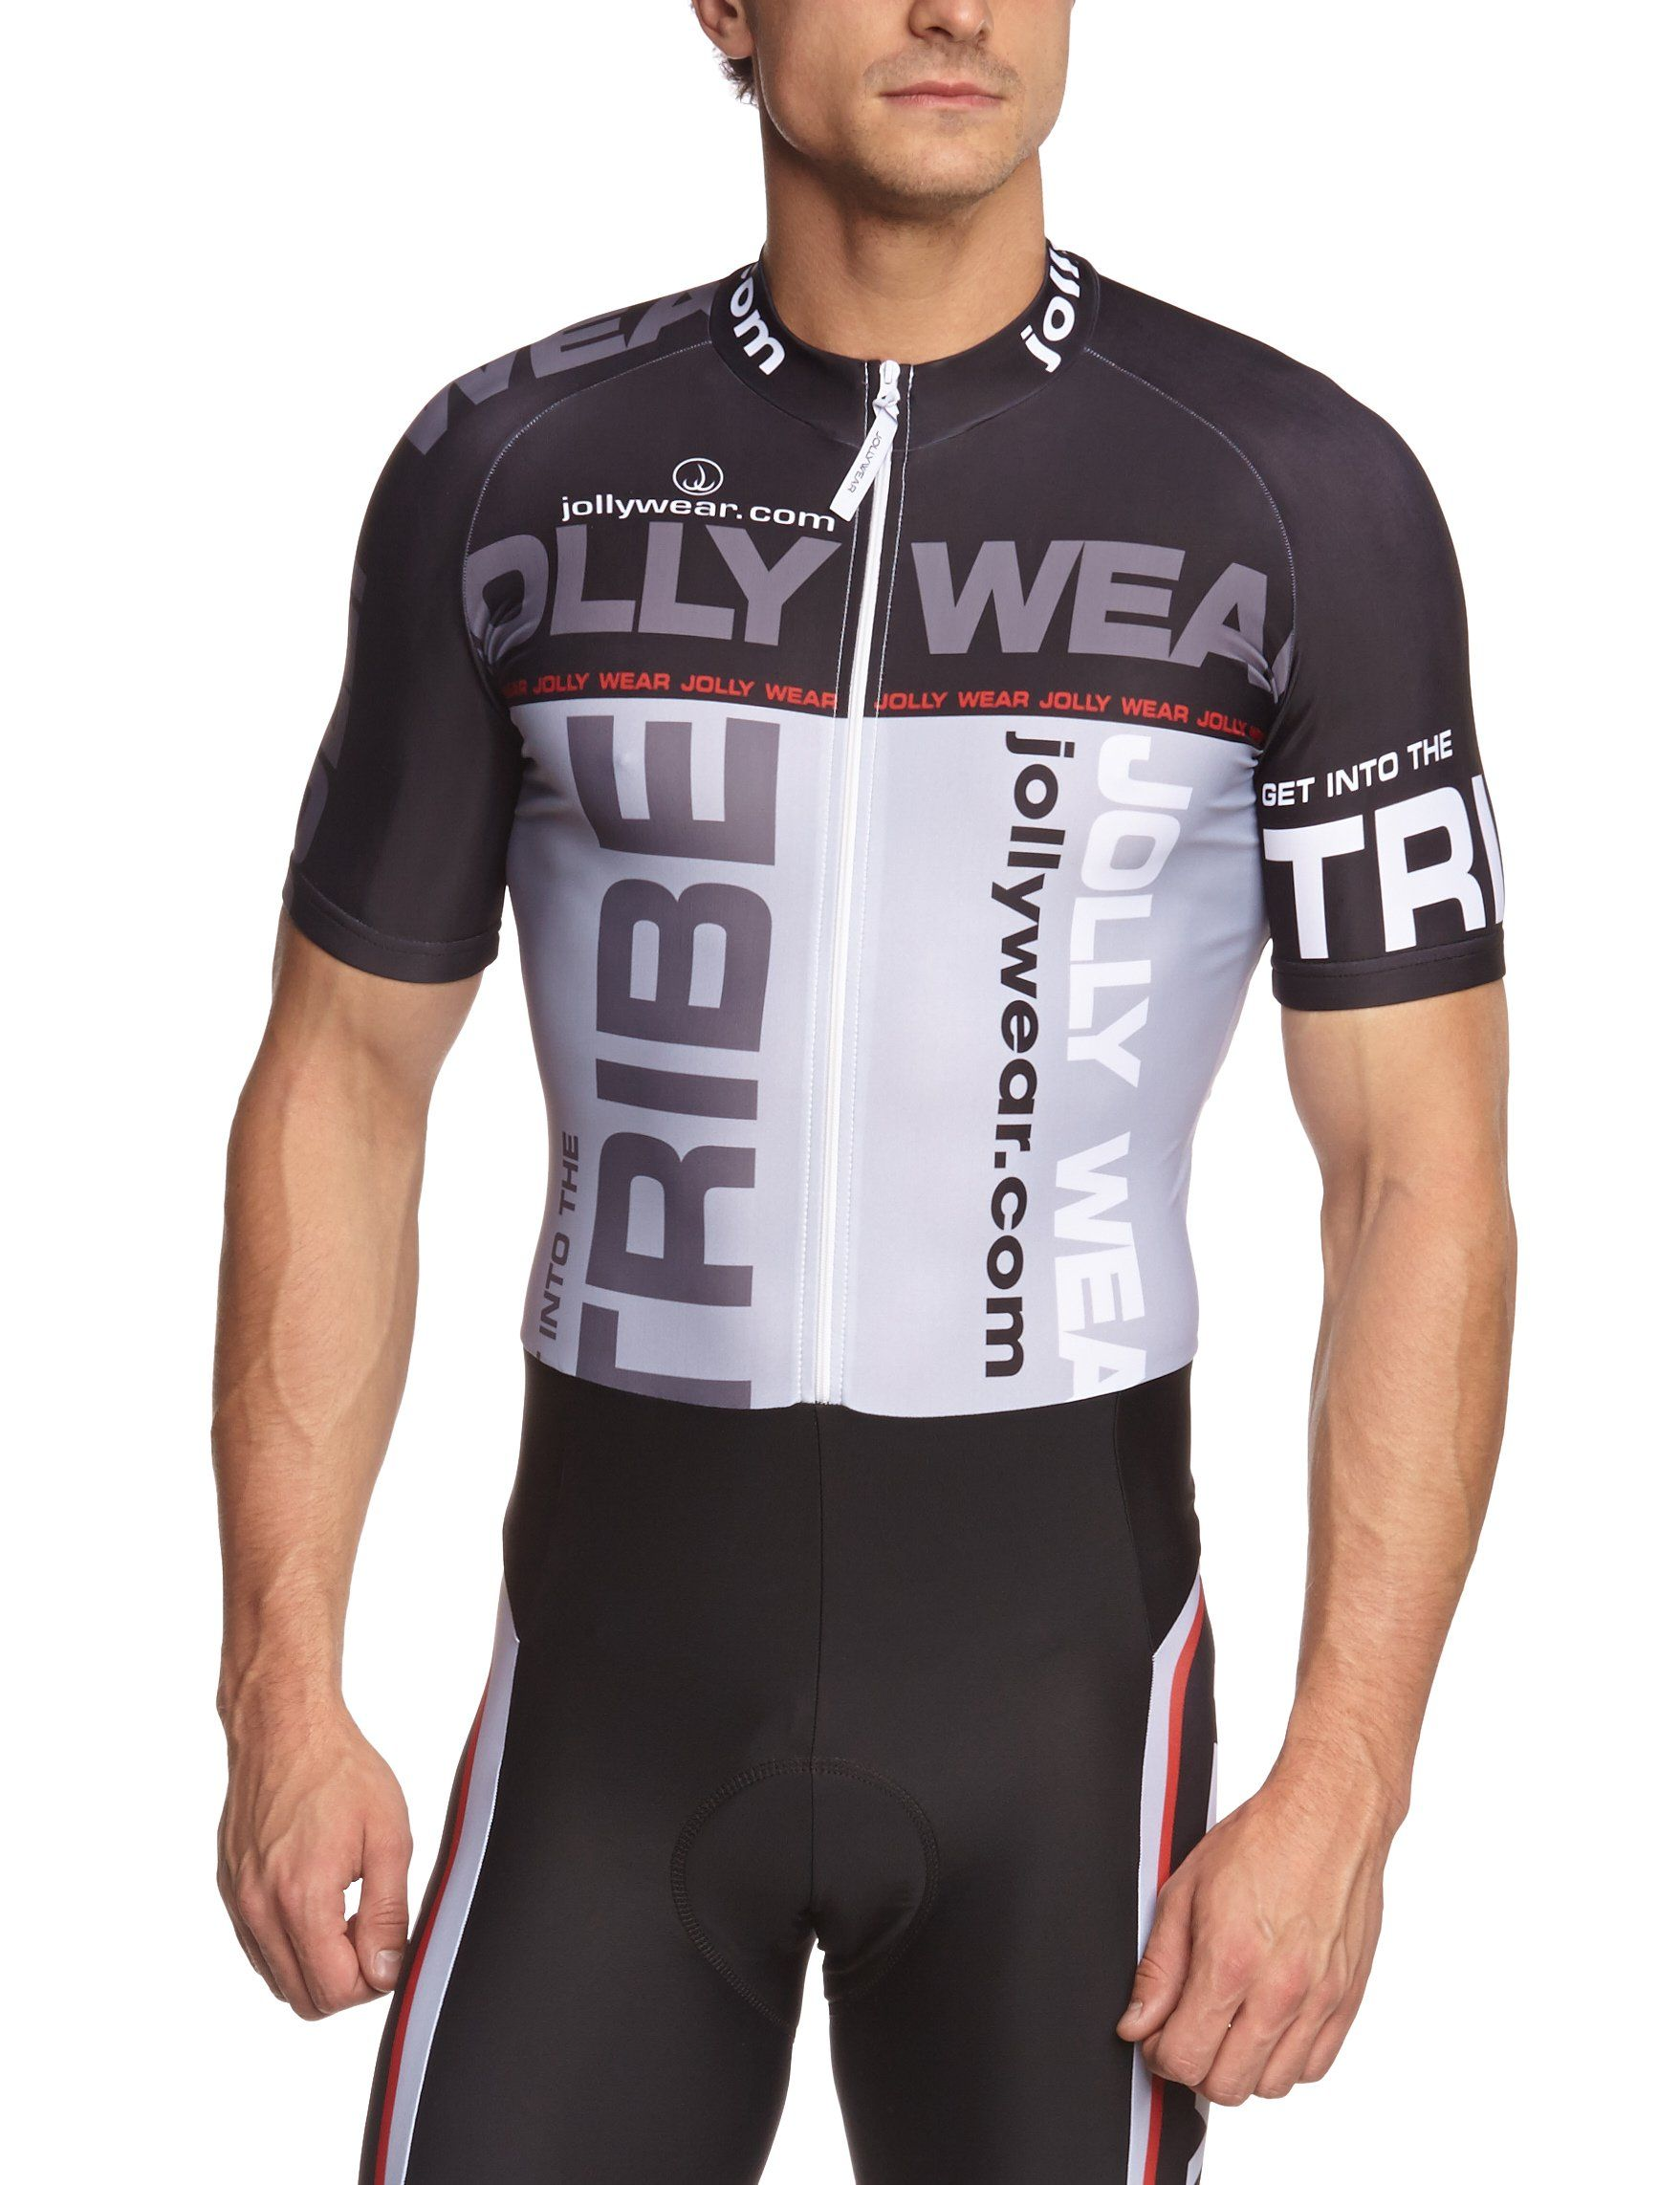 JOLLYWEAR Cycling Skinsuit short sleeves and legs DIEGO A collection 4XL     Want to know more d615bb137